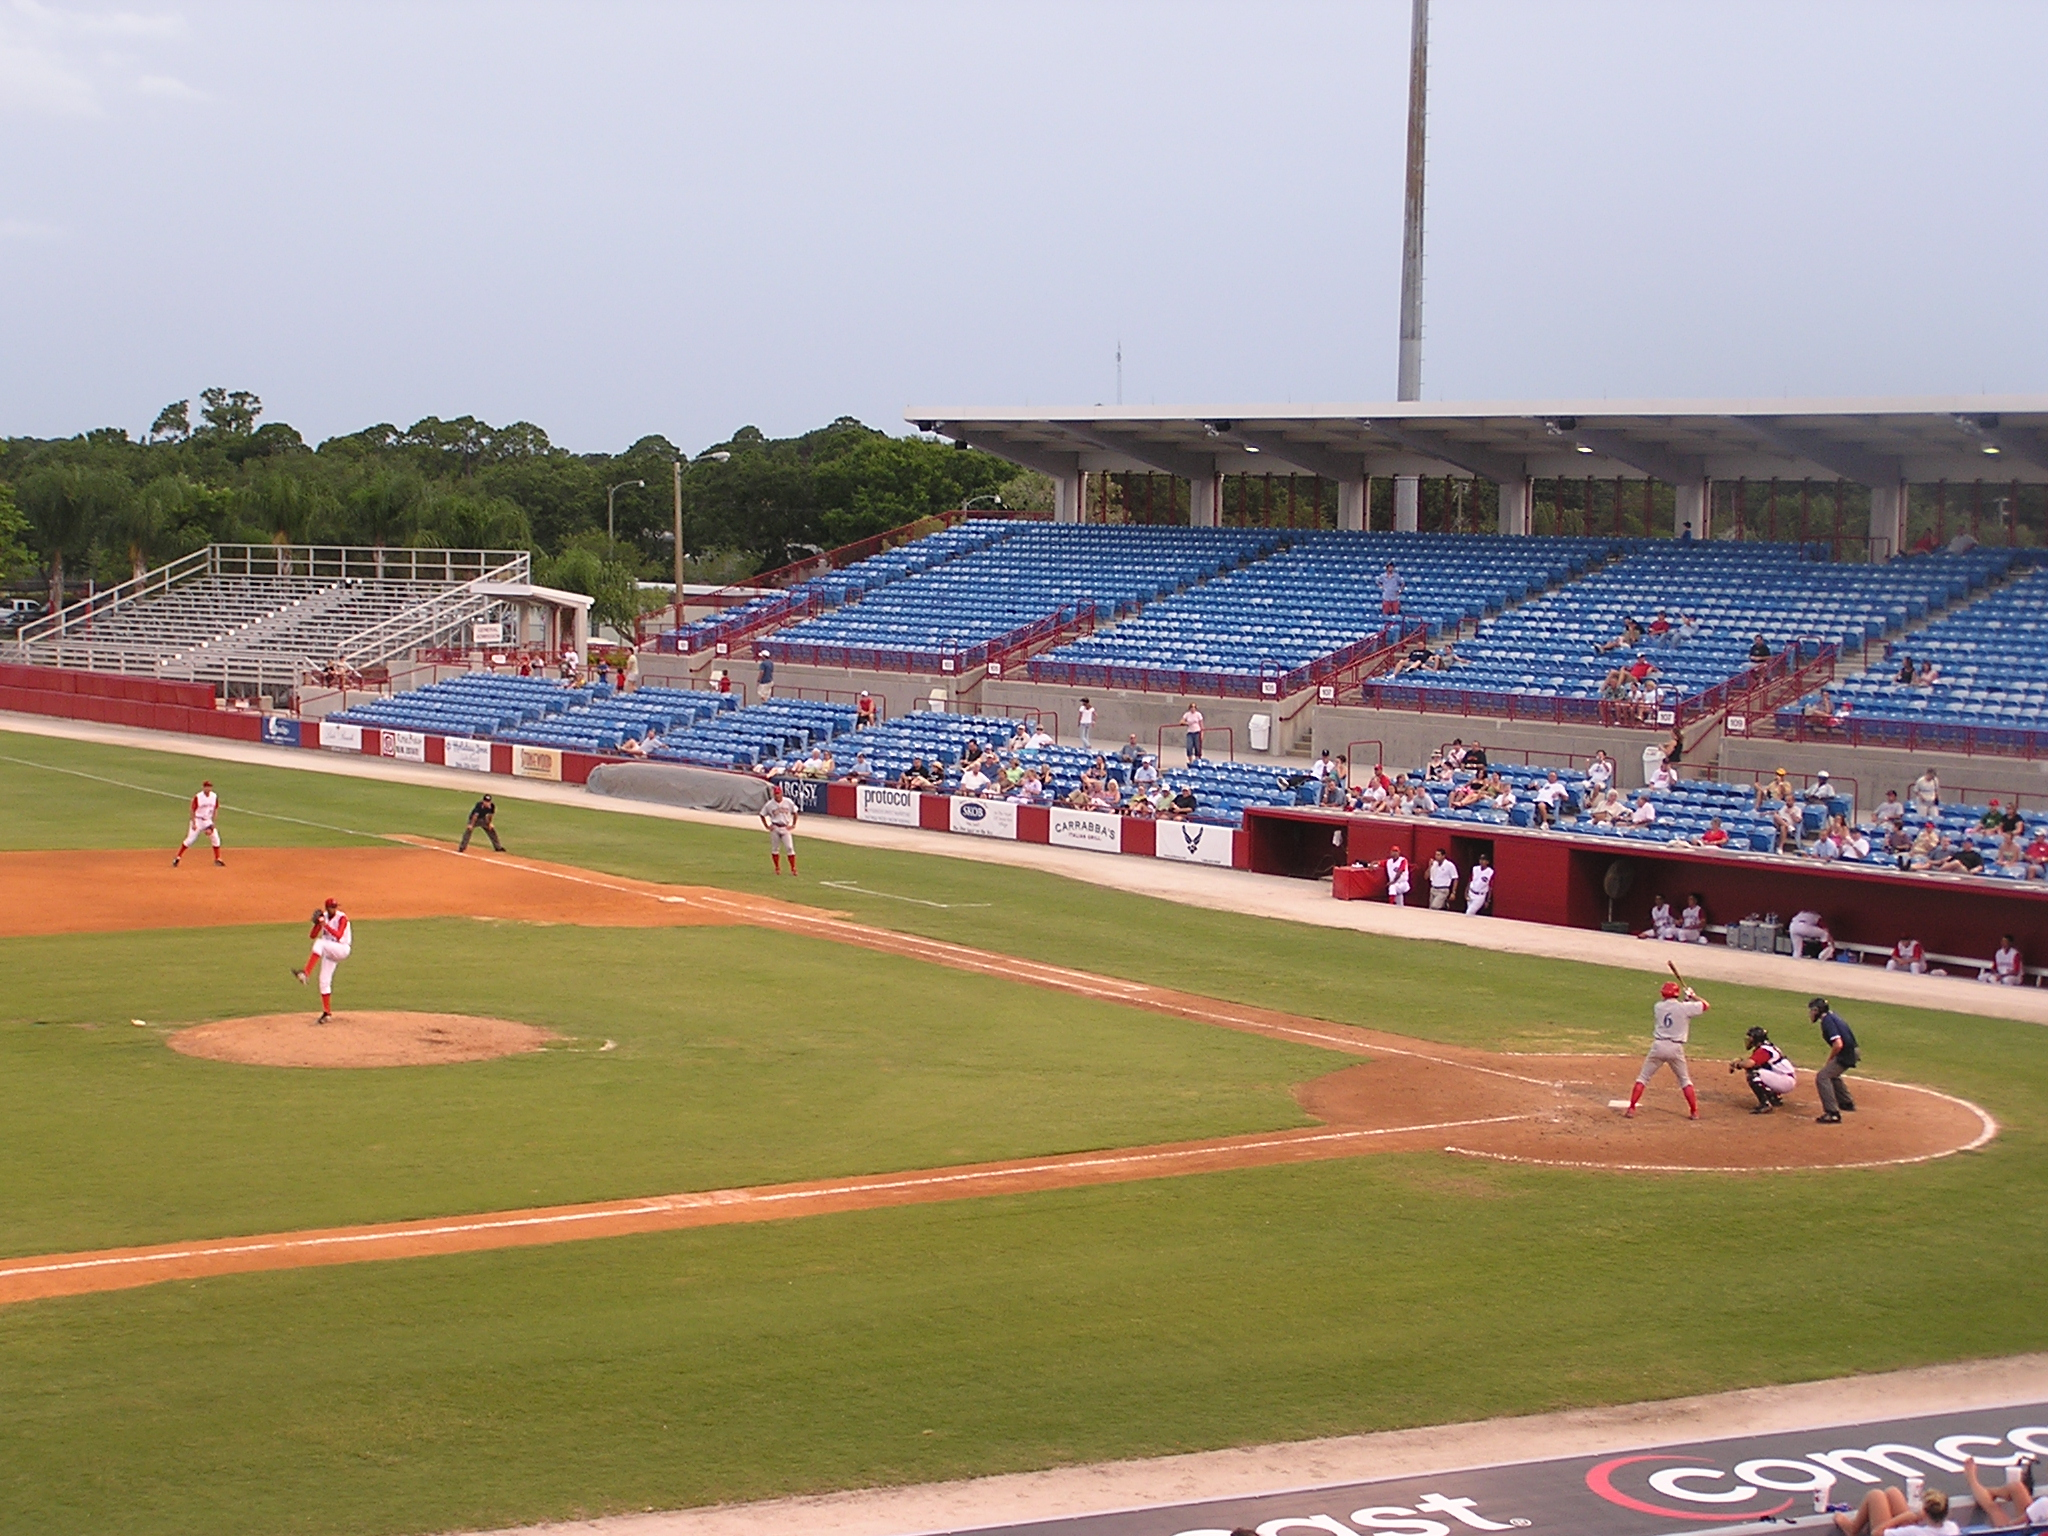 Ed Smith Stadium from the 3rd base side